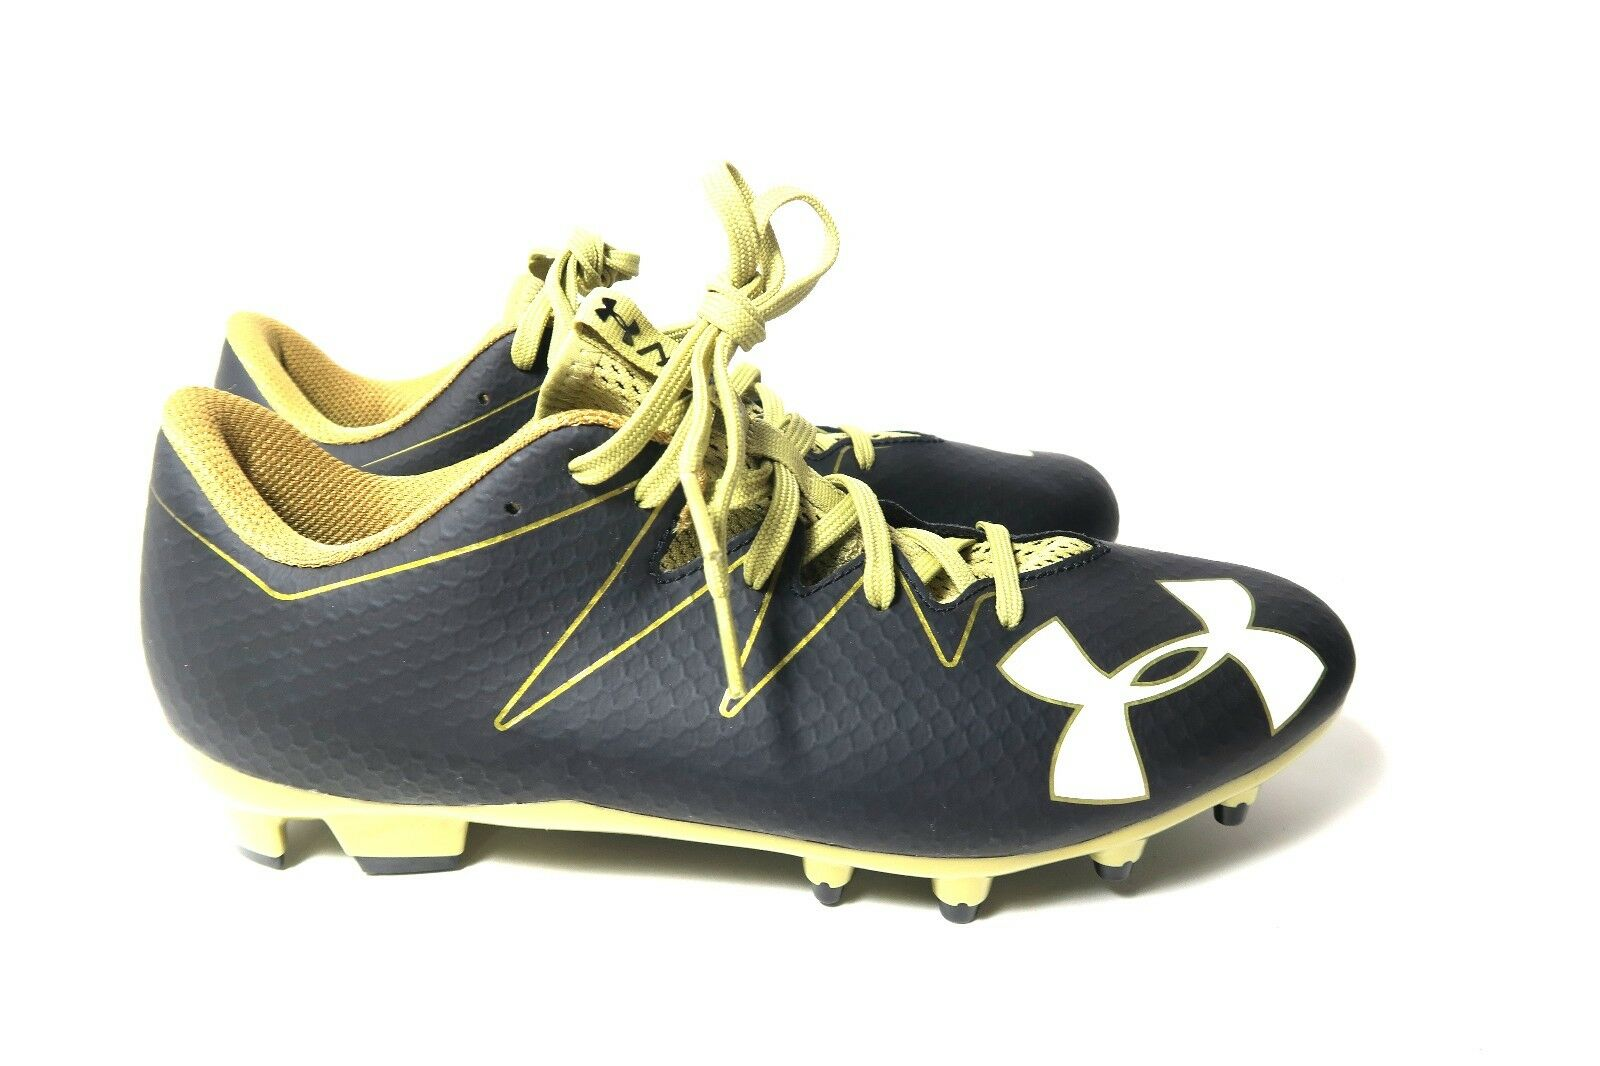 New UNDER ARMOUR UA Mens Sz 10.5 Low Football Cleats 1287492  NITRO Black Gold